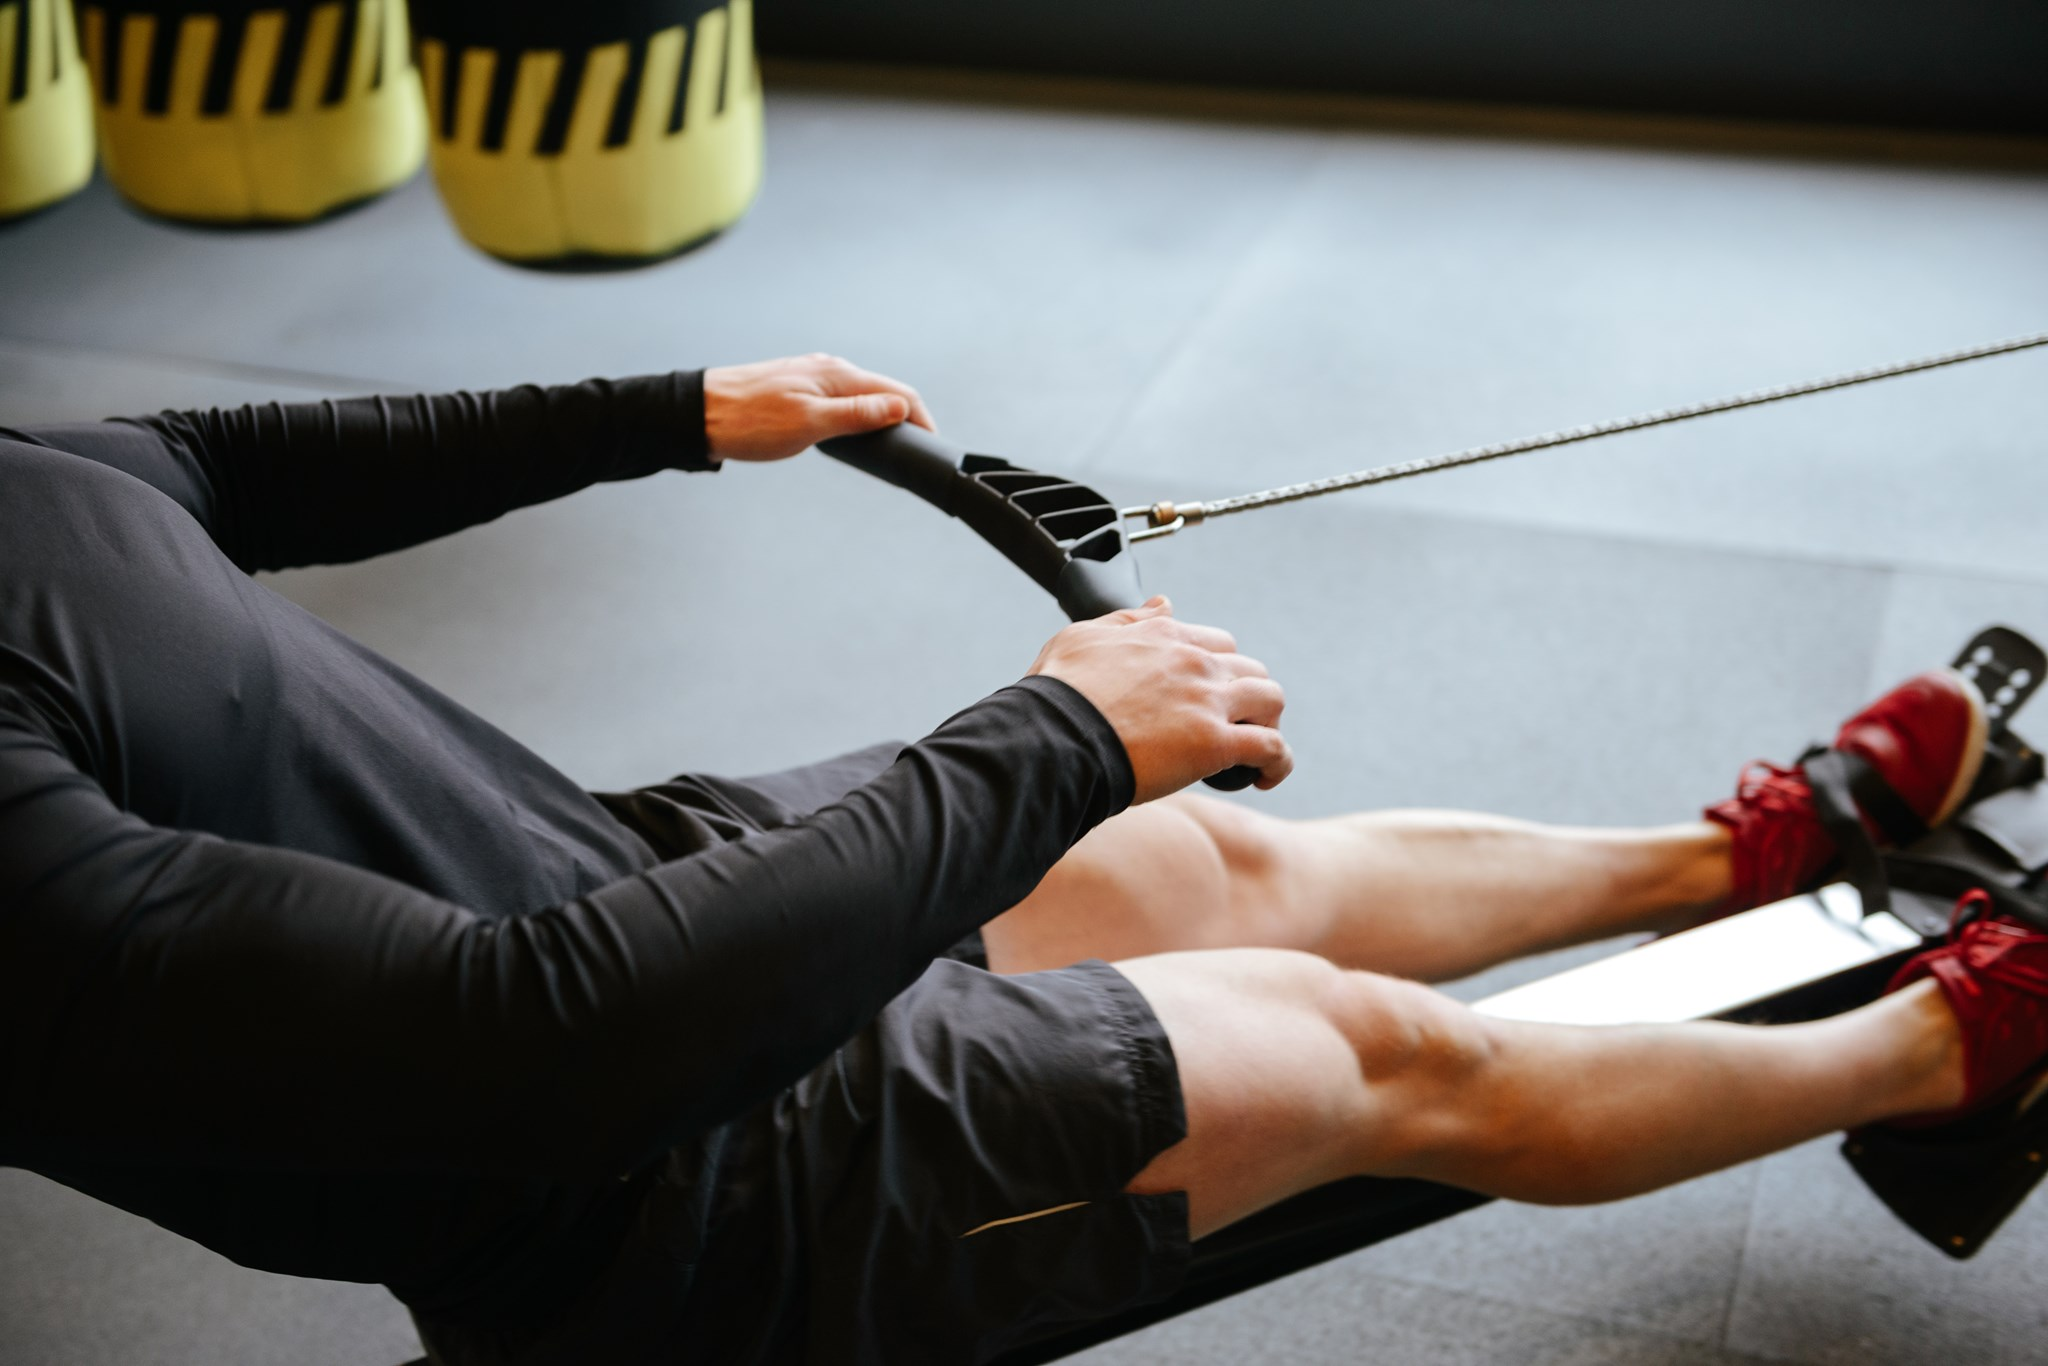 Therapeutic Exercises and Stretching